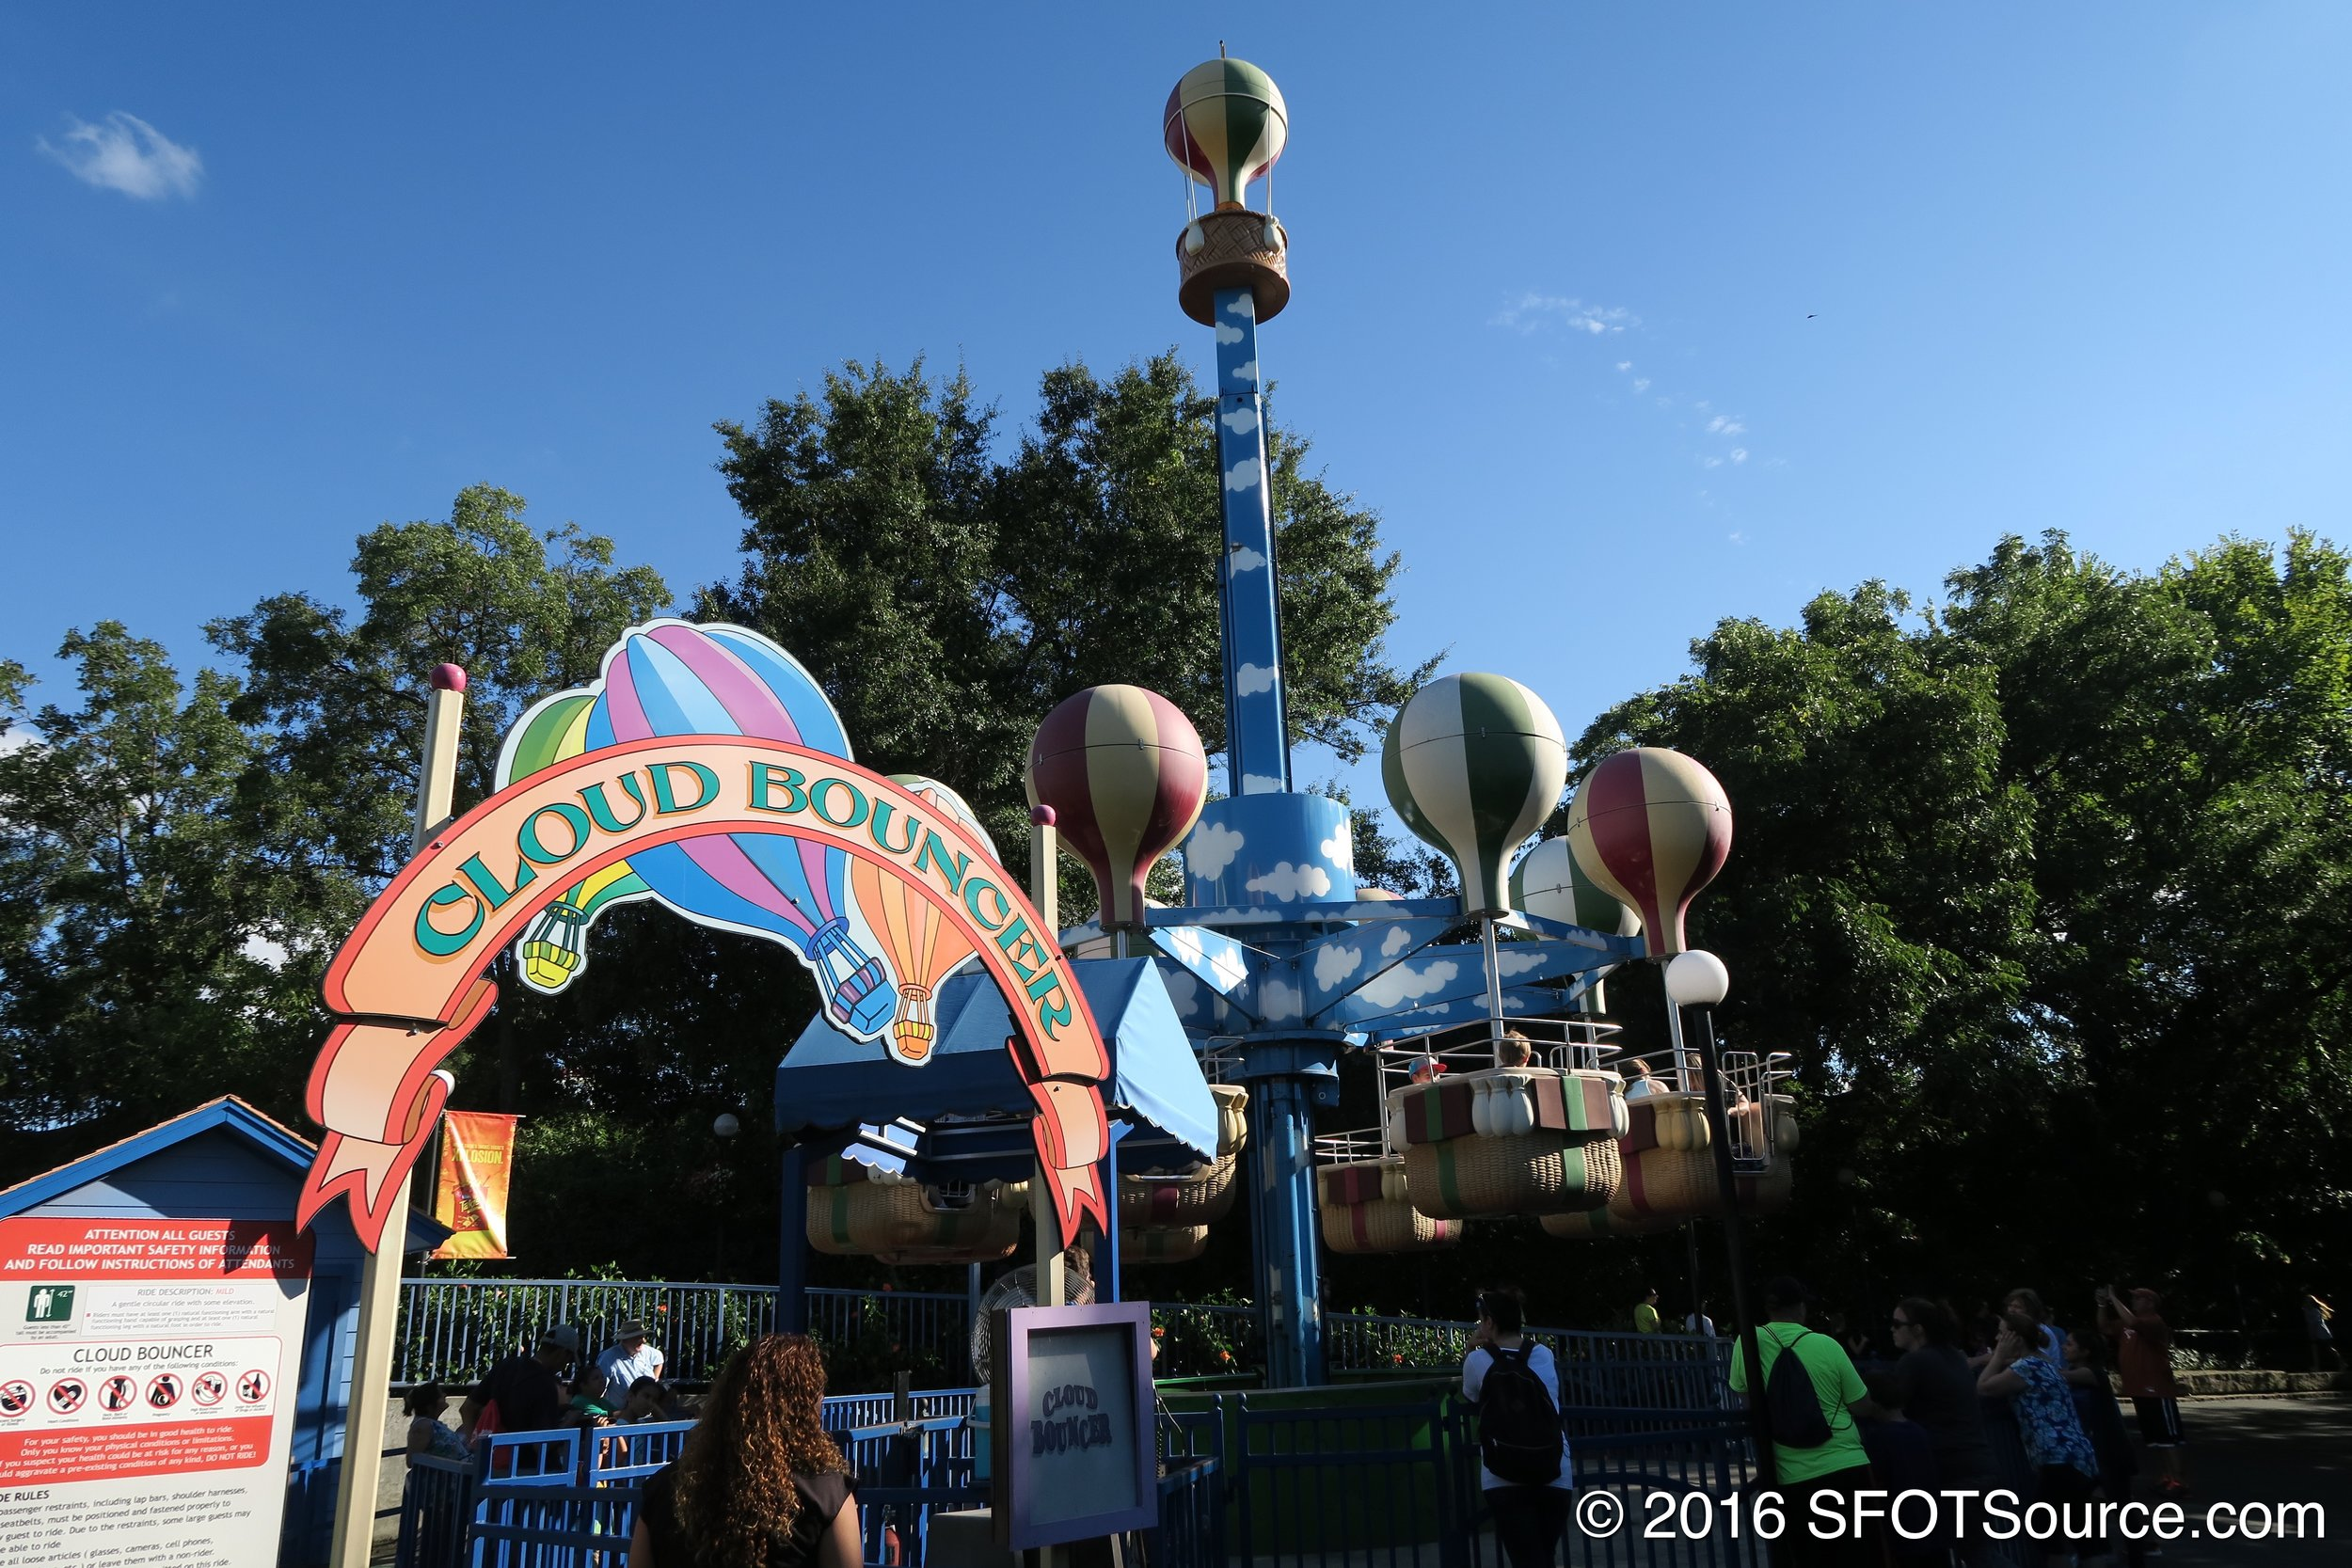 The entrance to Cloud Bouncer.